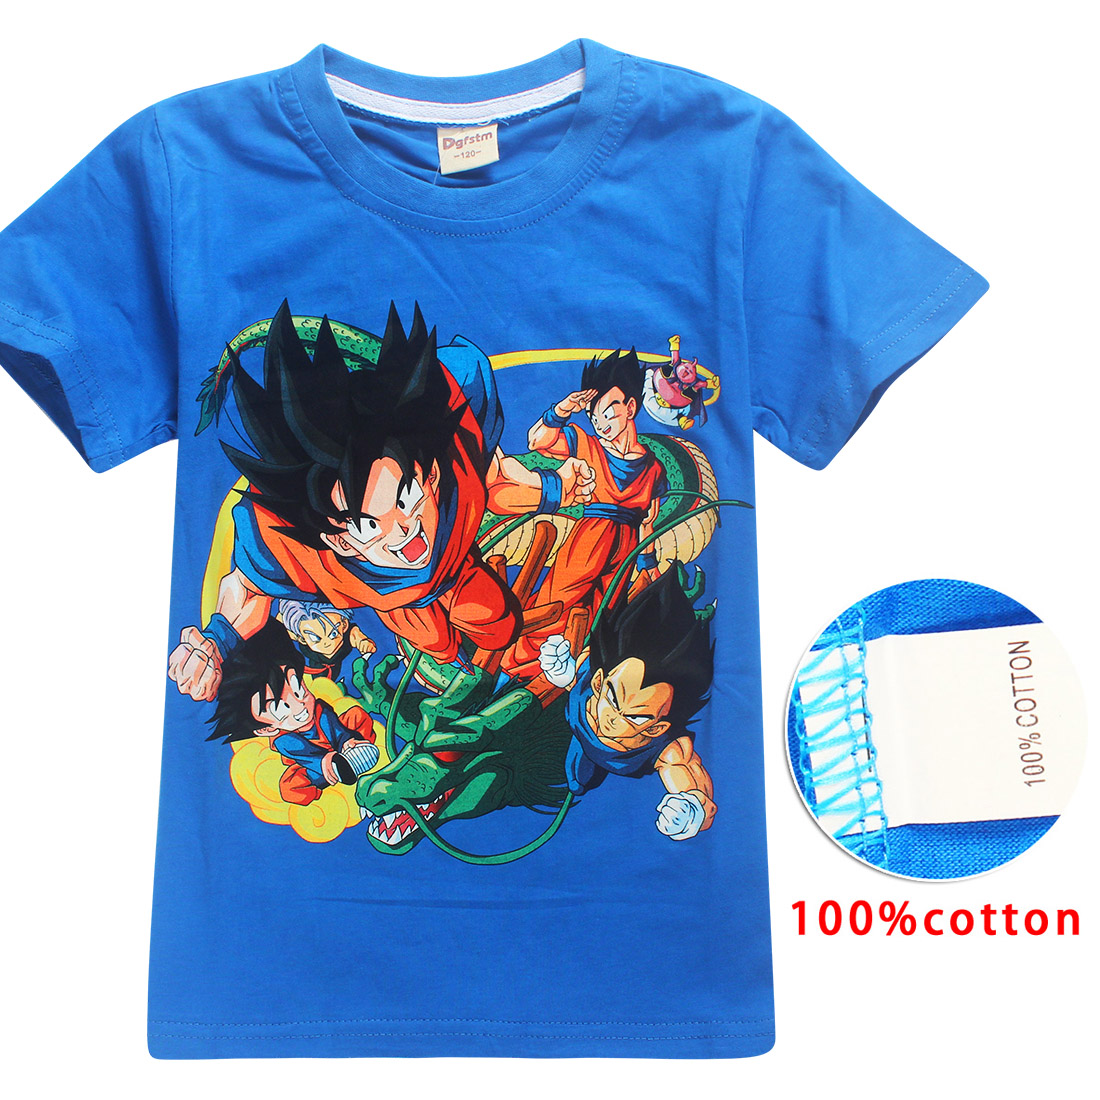 4-12Year Dragon ball t shirt summer top kids clothes baby girls boys clothes bobo choses cartoon 100%cotton tshirt 2018 kid tees